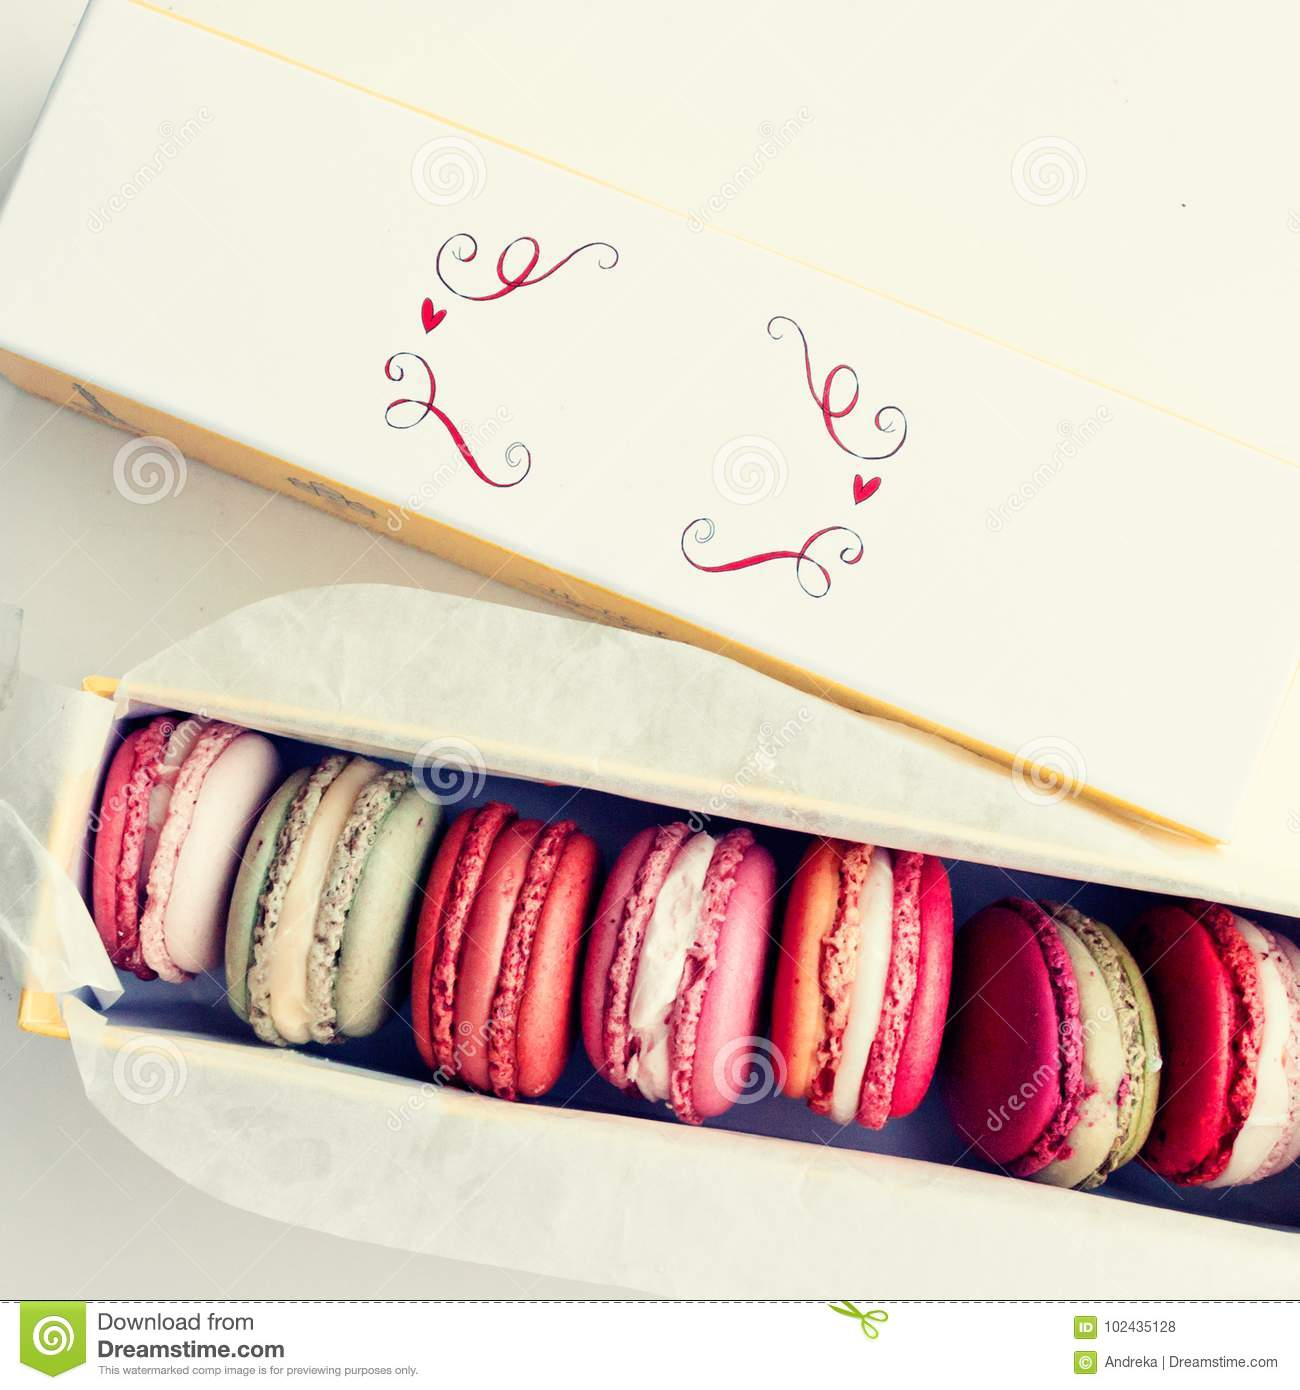 Box Pastel Macarons Wiring Diagrams Moen Ca87524csl Parts List And Diagram Ereplacementpartscom Of Stock Photo Image Macaroons 102435128 Rh Dreamstime Com Blue Cat Macaron